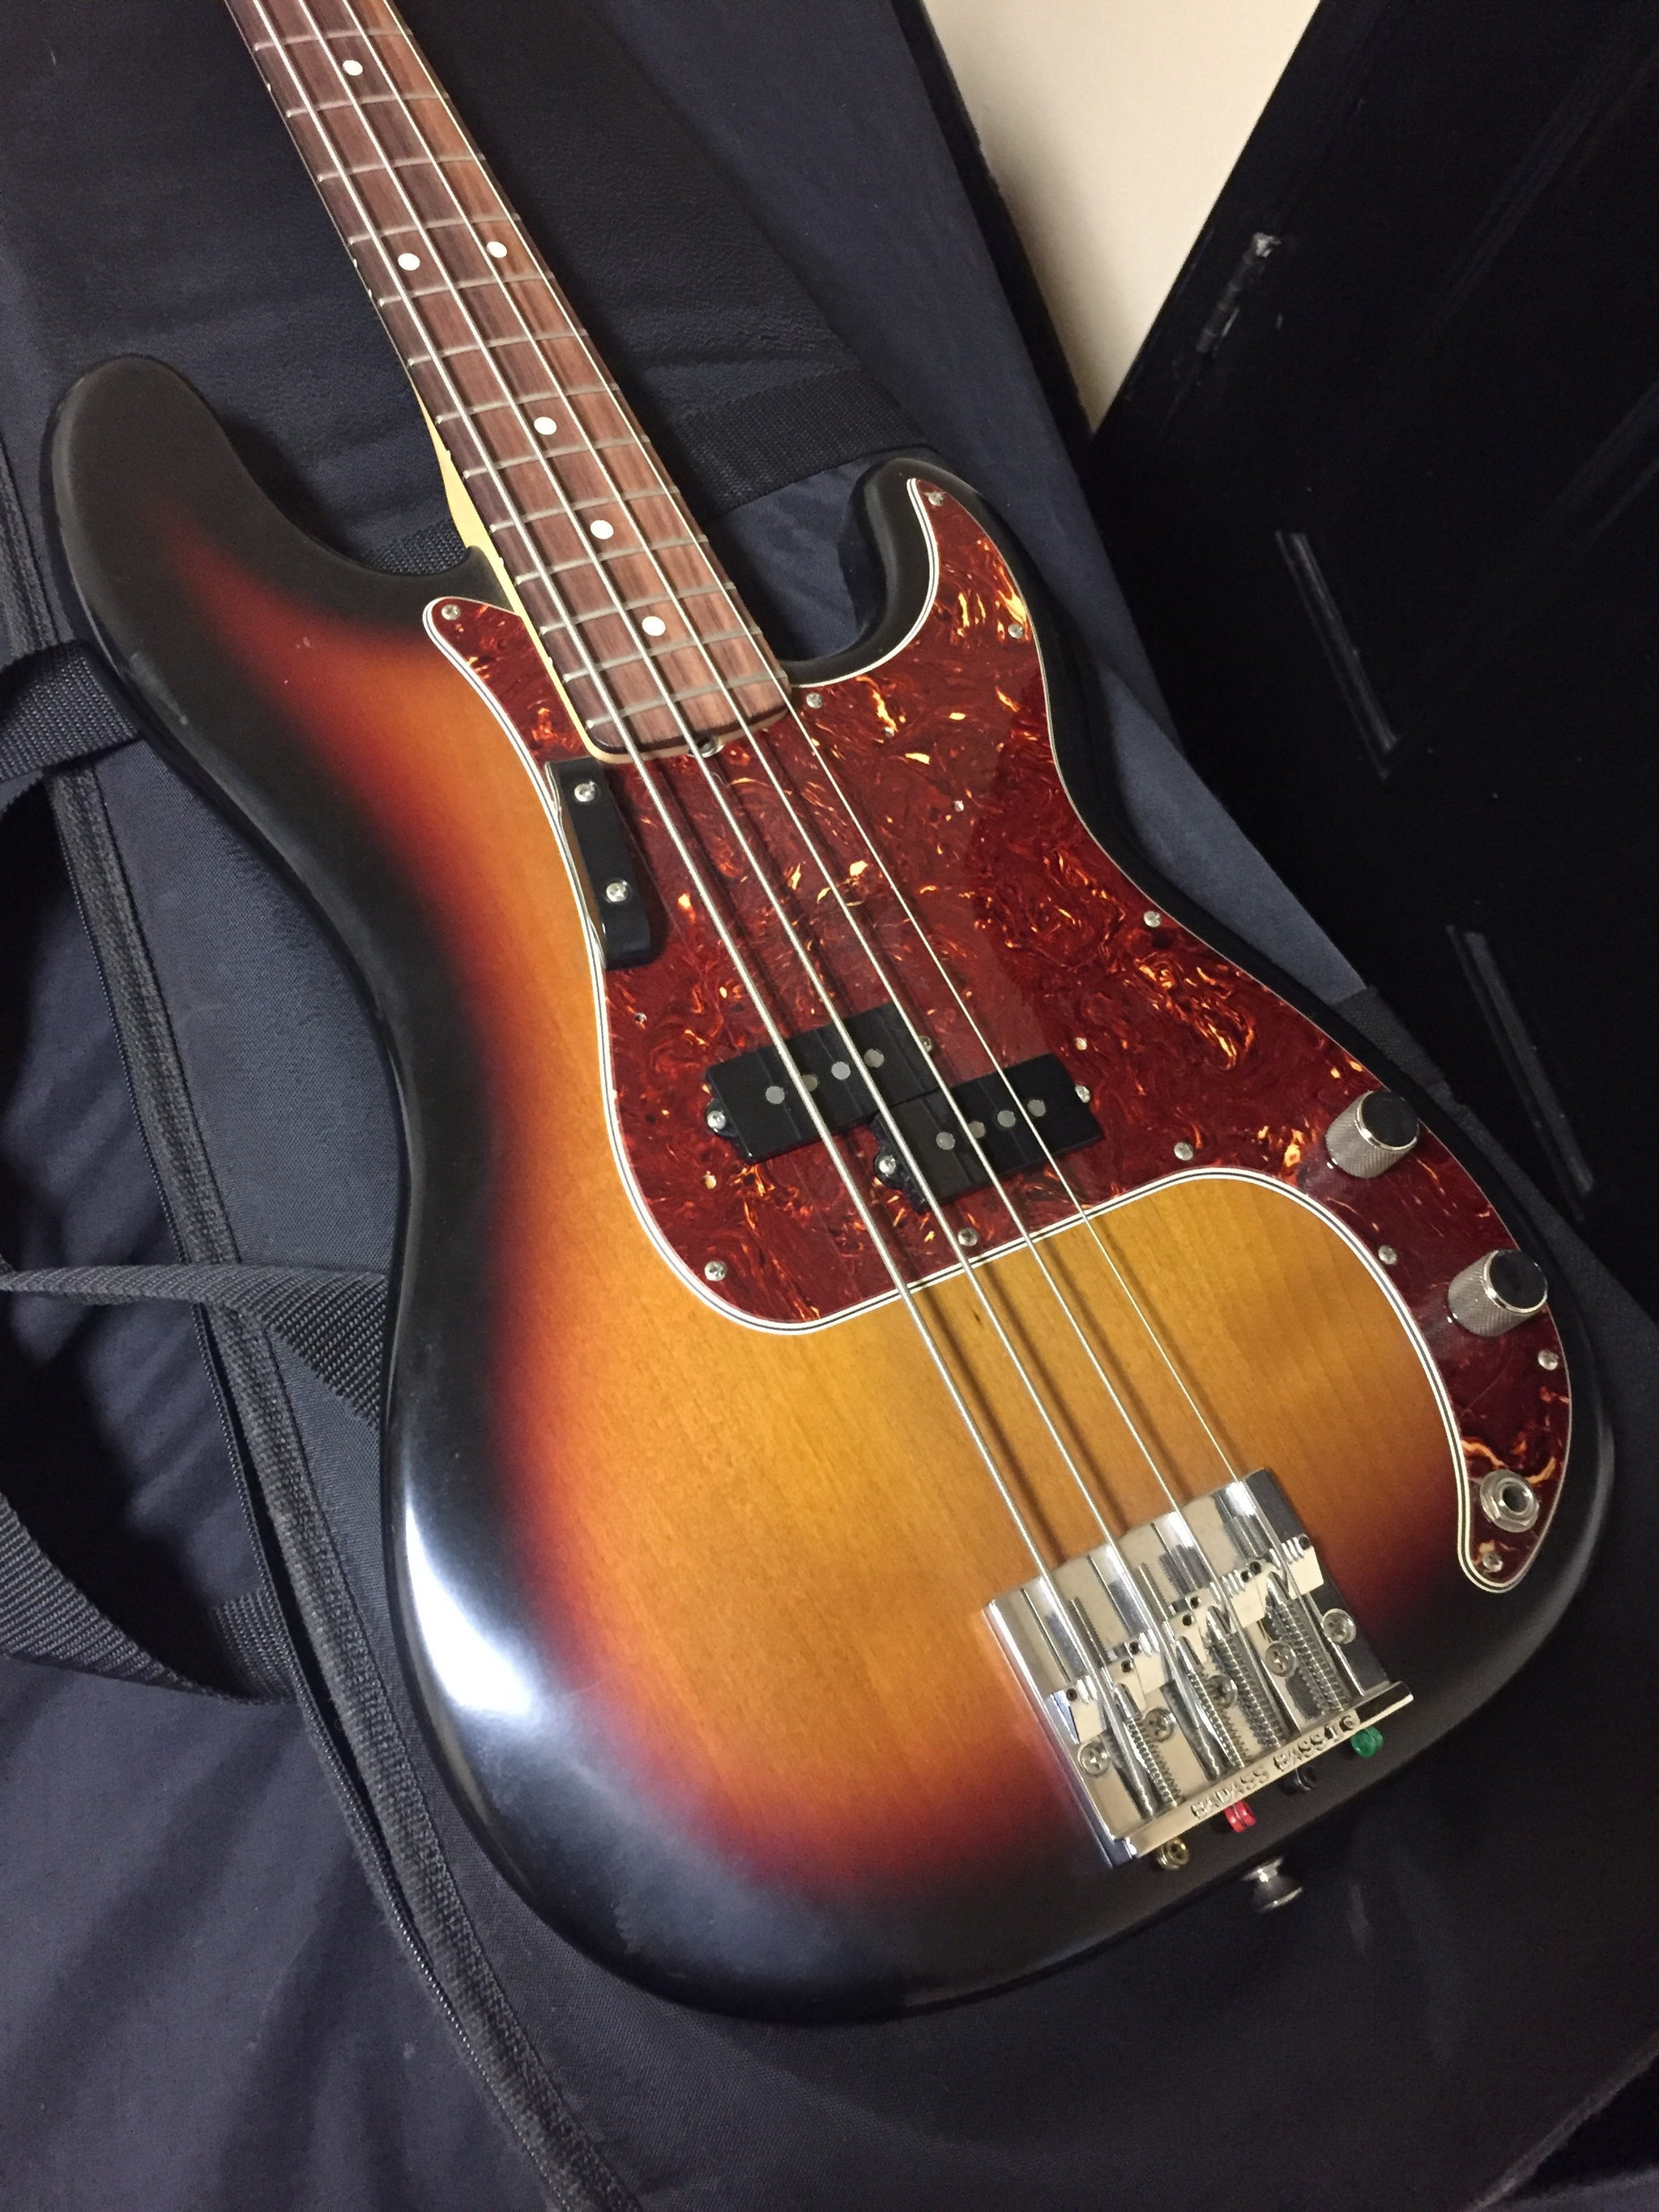 2006 60th Anniversary P Bass**** SOLD****